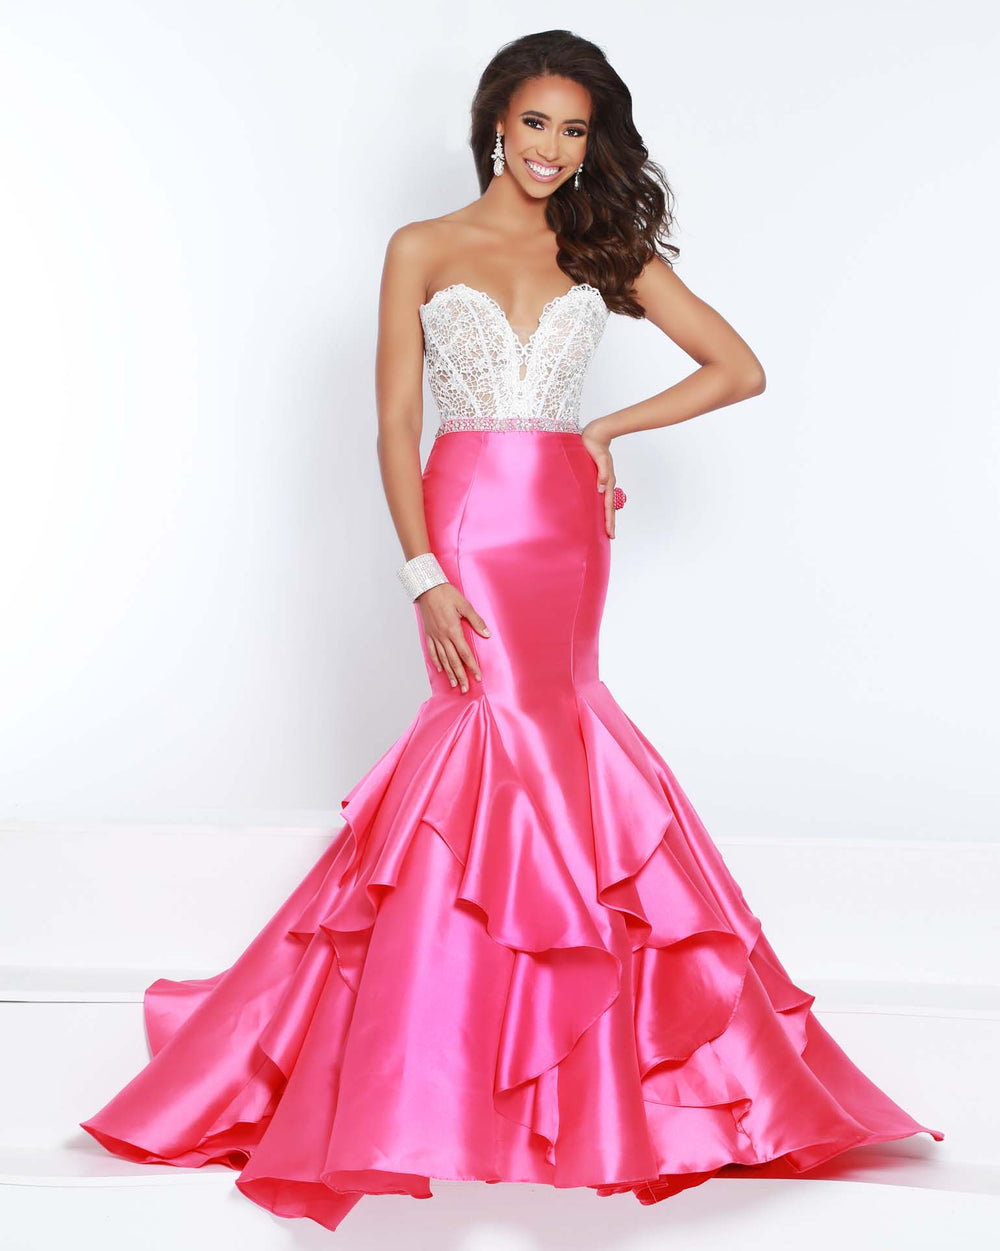 2Cute 91554 Strapless Fitted Long Mermaid Dress